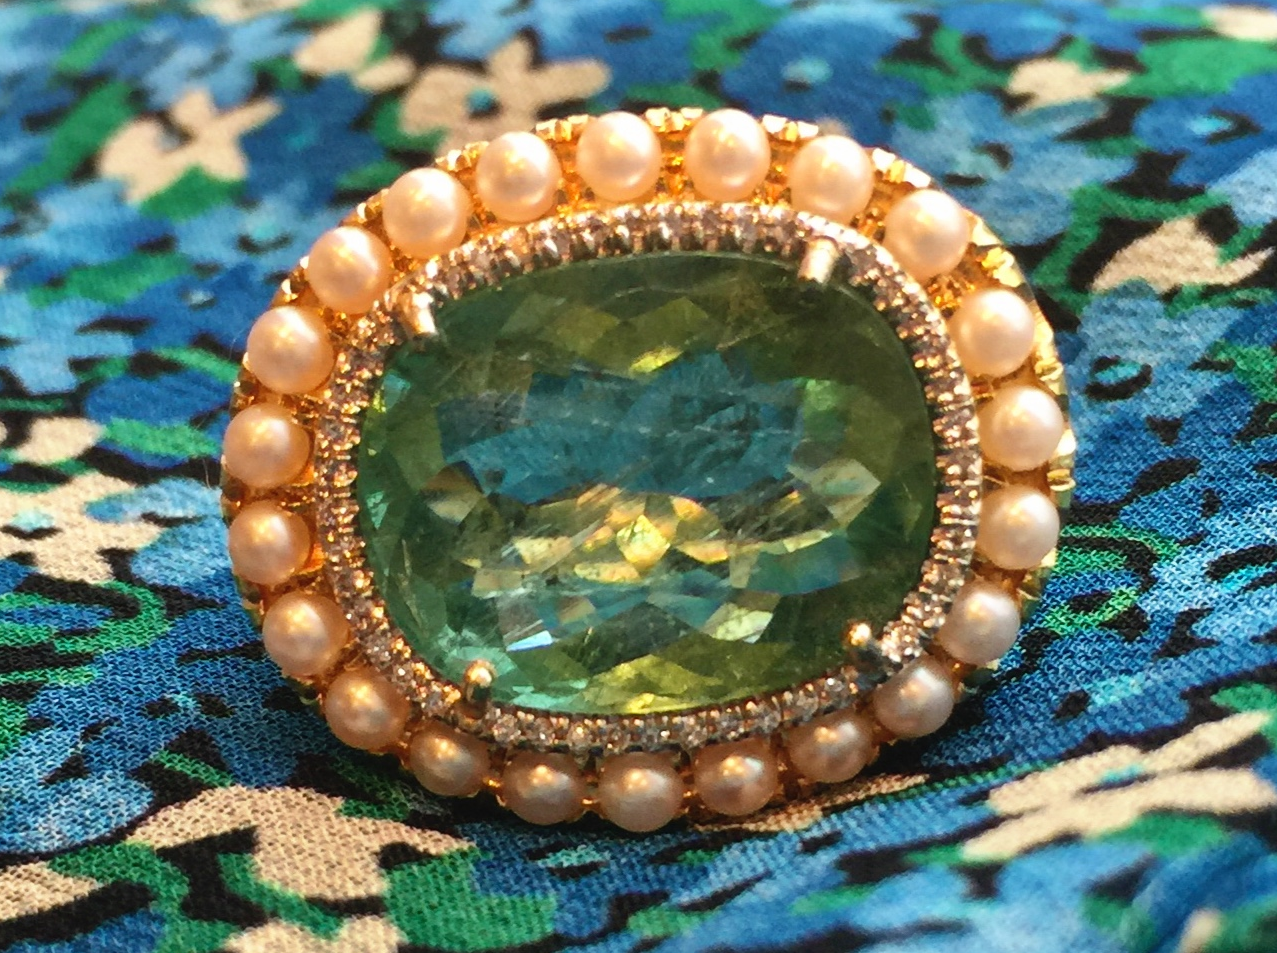 An Irene Neuwirth ring with green tourmaline,akoya cultured pearls and diamond pave.   Capitol.